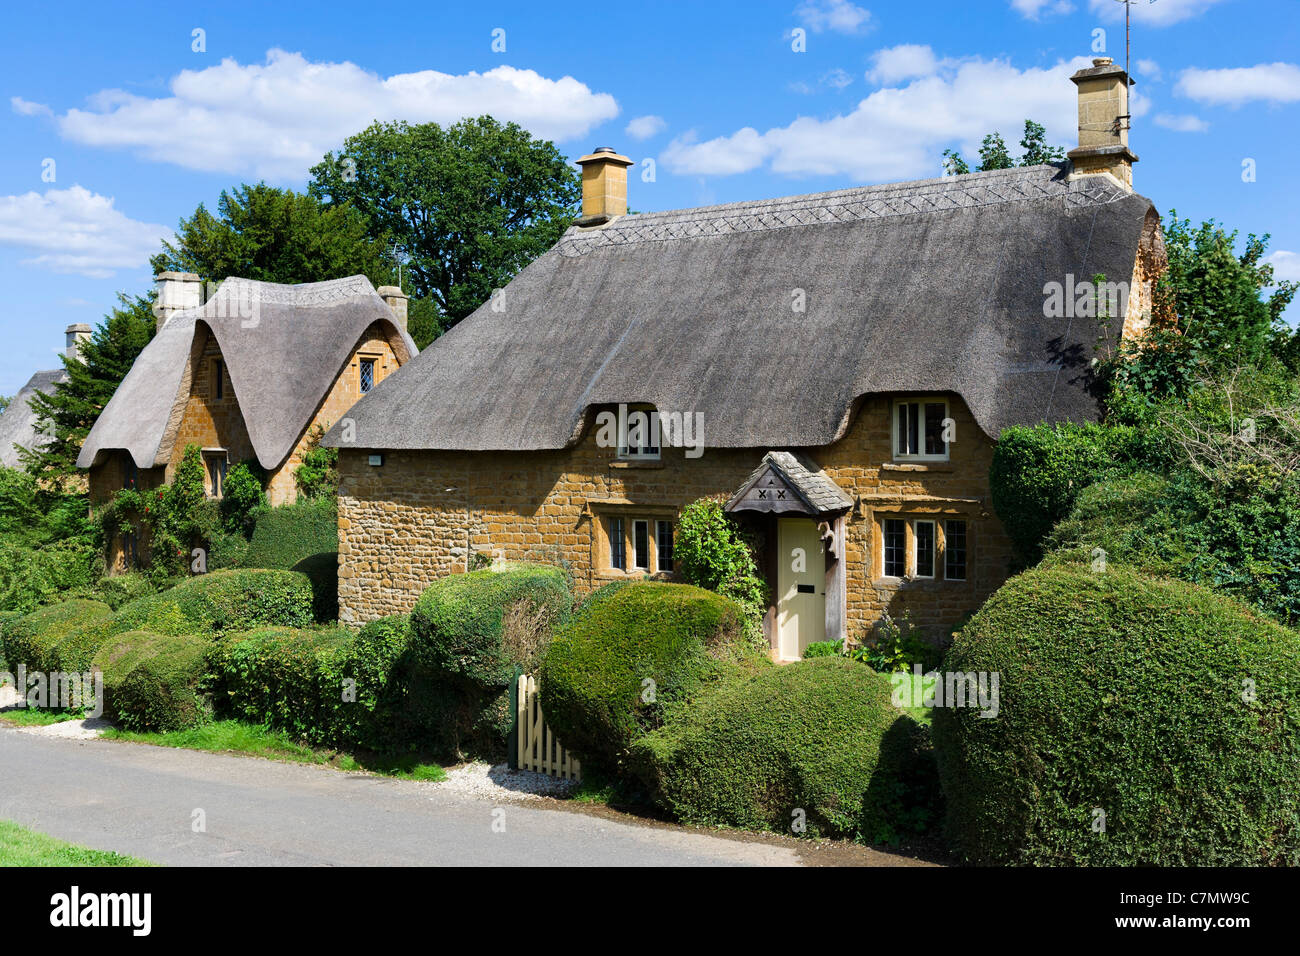 Thatched cottages in the Cotswold village of Great Tew, Oxfordshire, England, UK - Stock Image